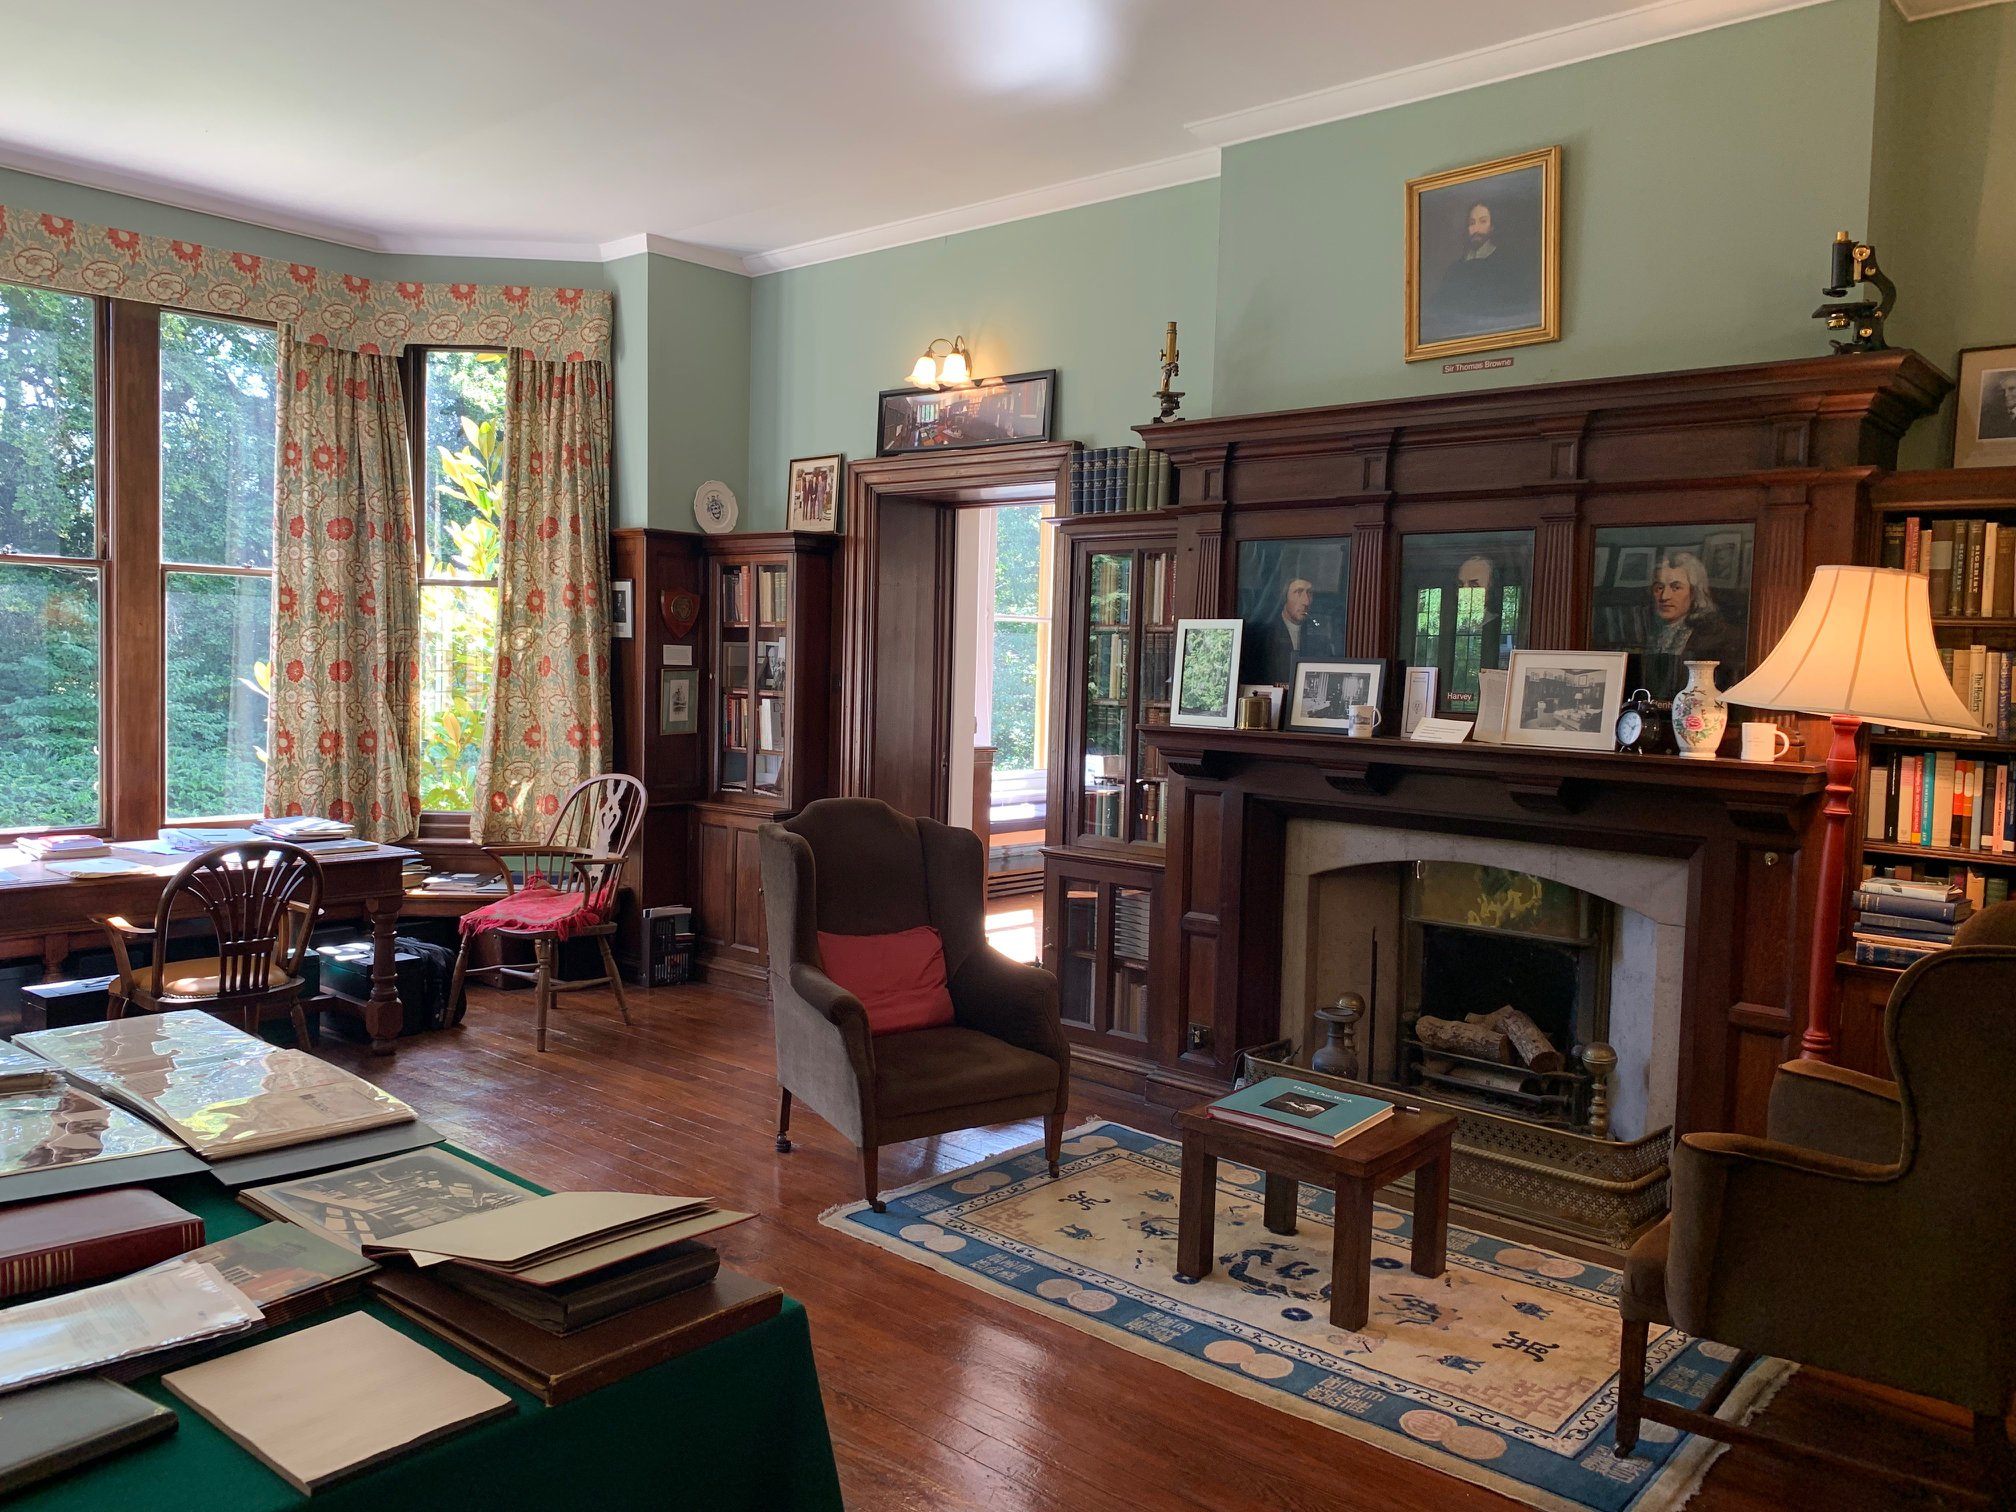 Osler's Library at 13 Norham Gardens during Oxford Open Doors 2019